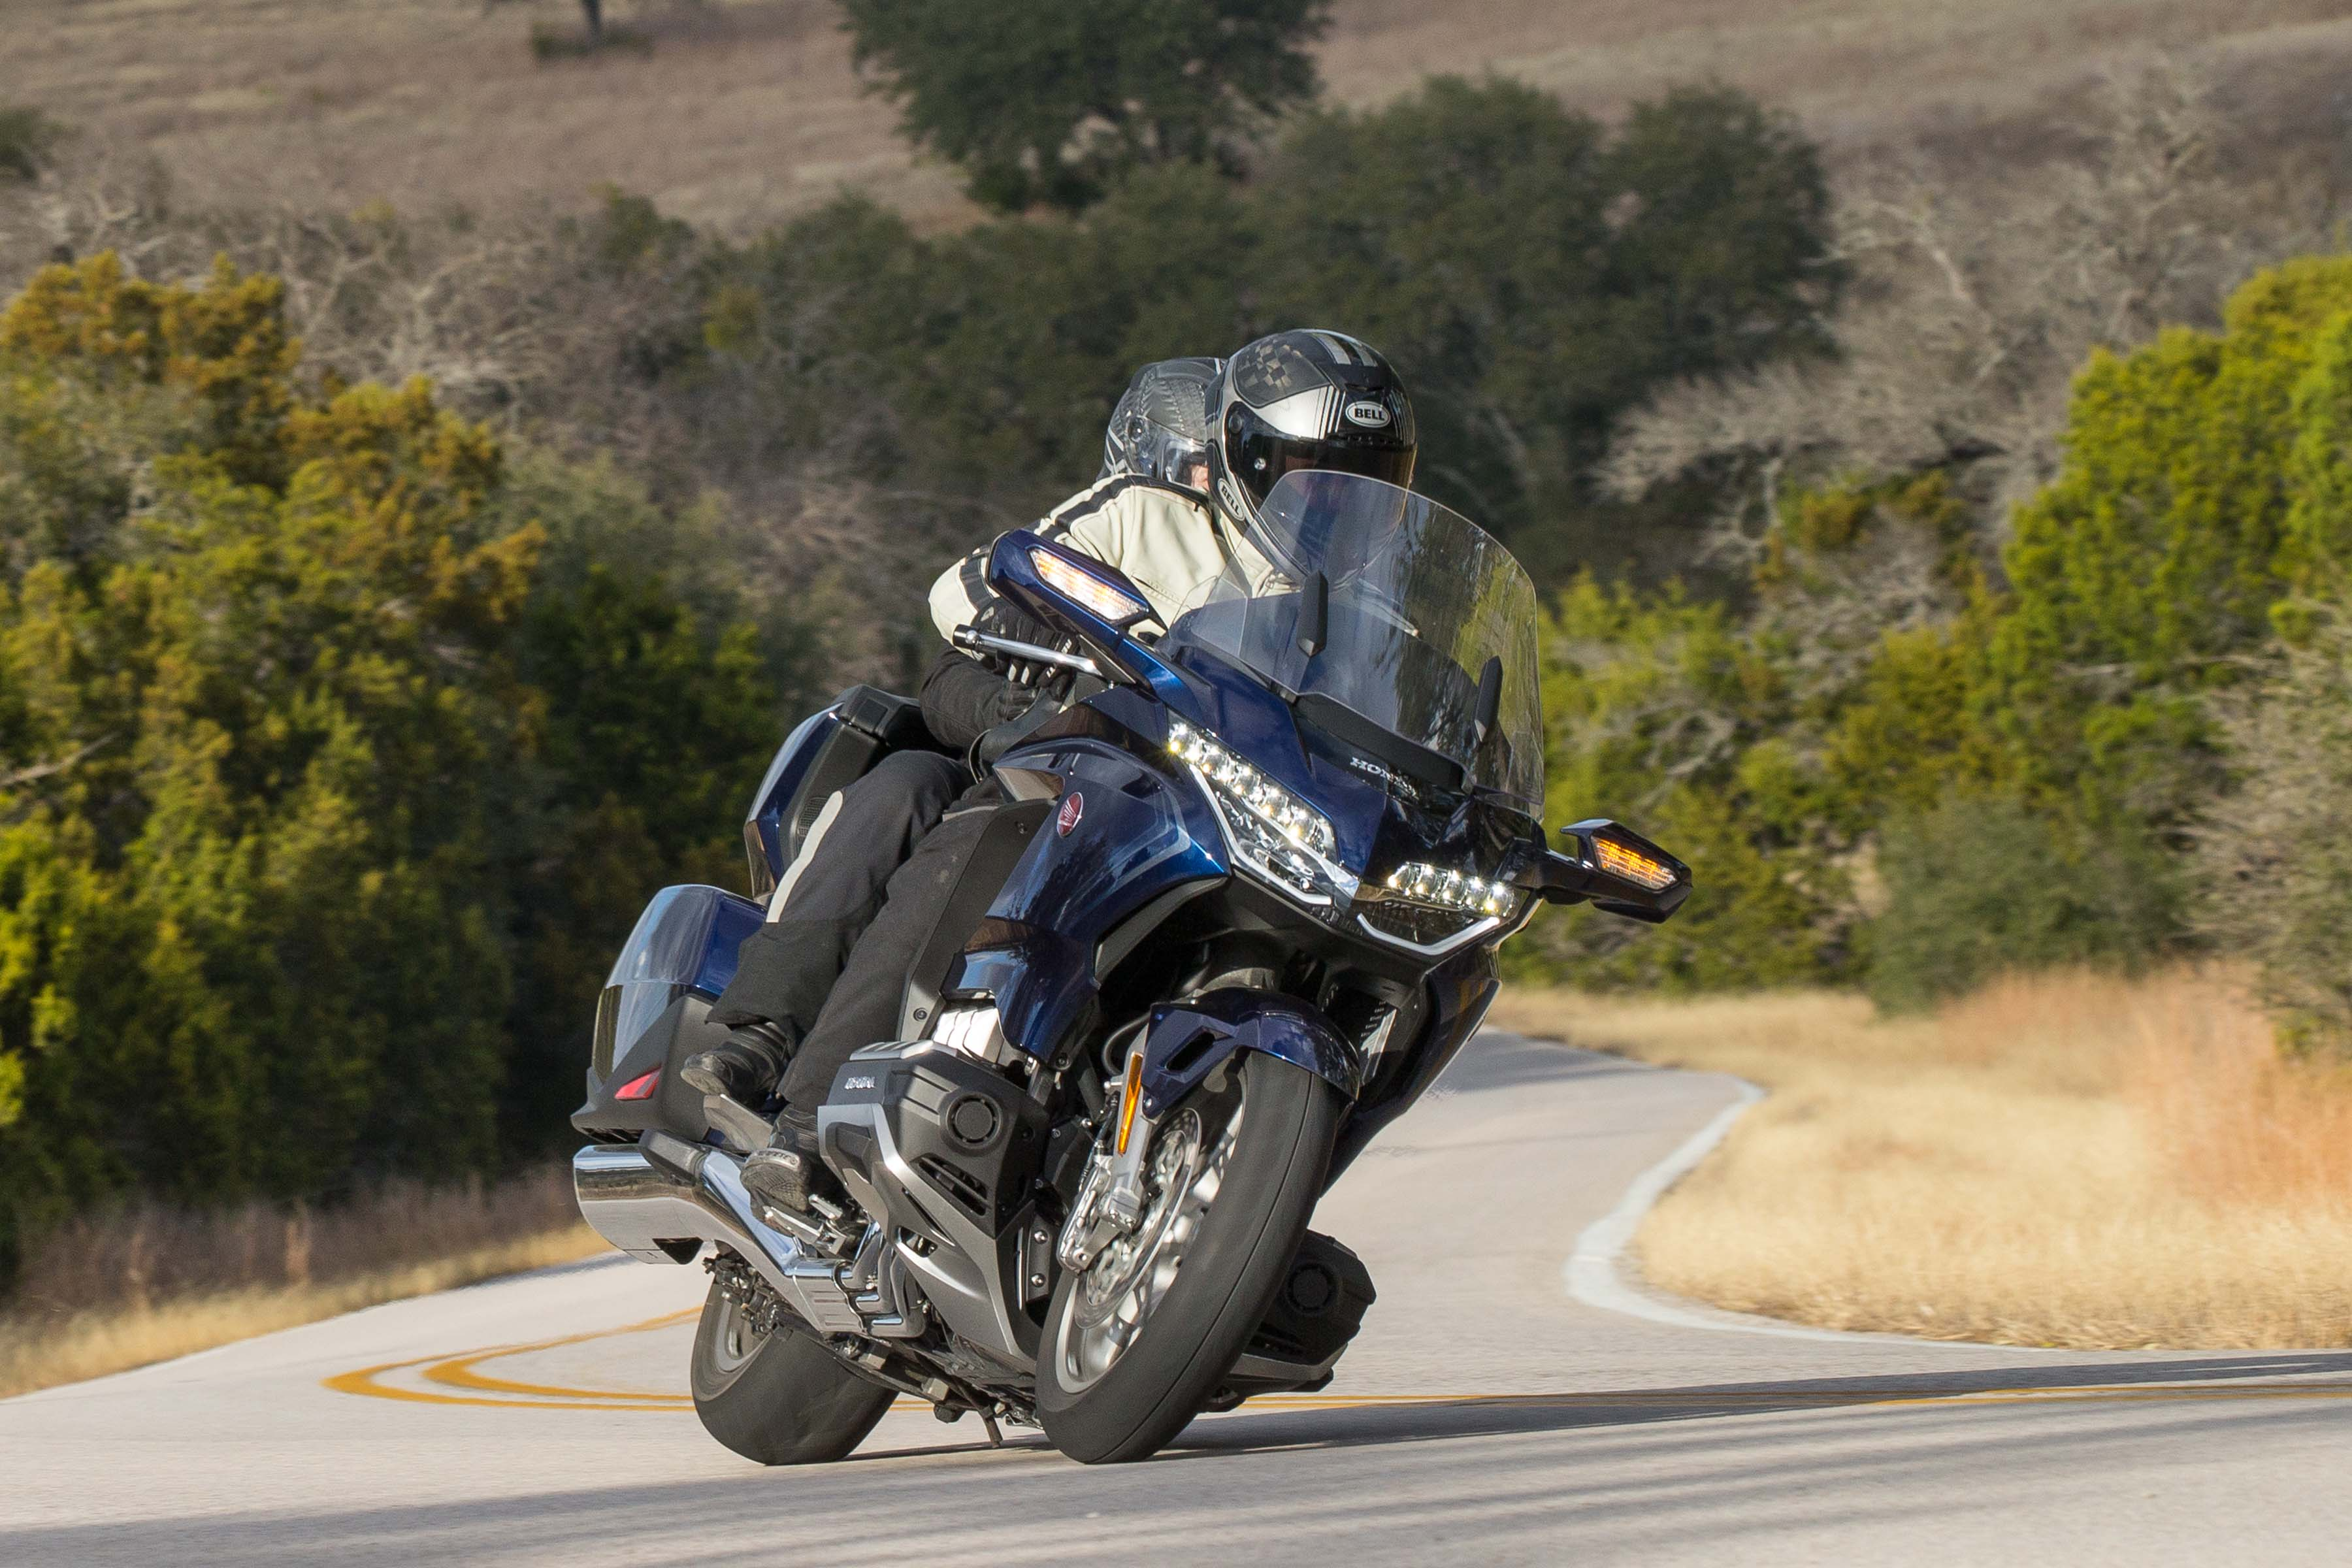 What You Need to Know About the 2018 Honda Gold Wing